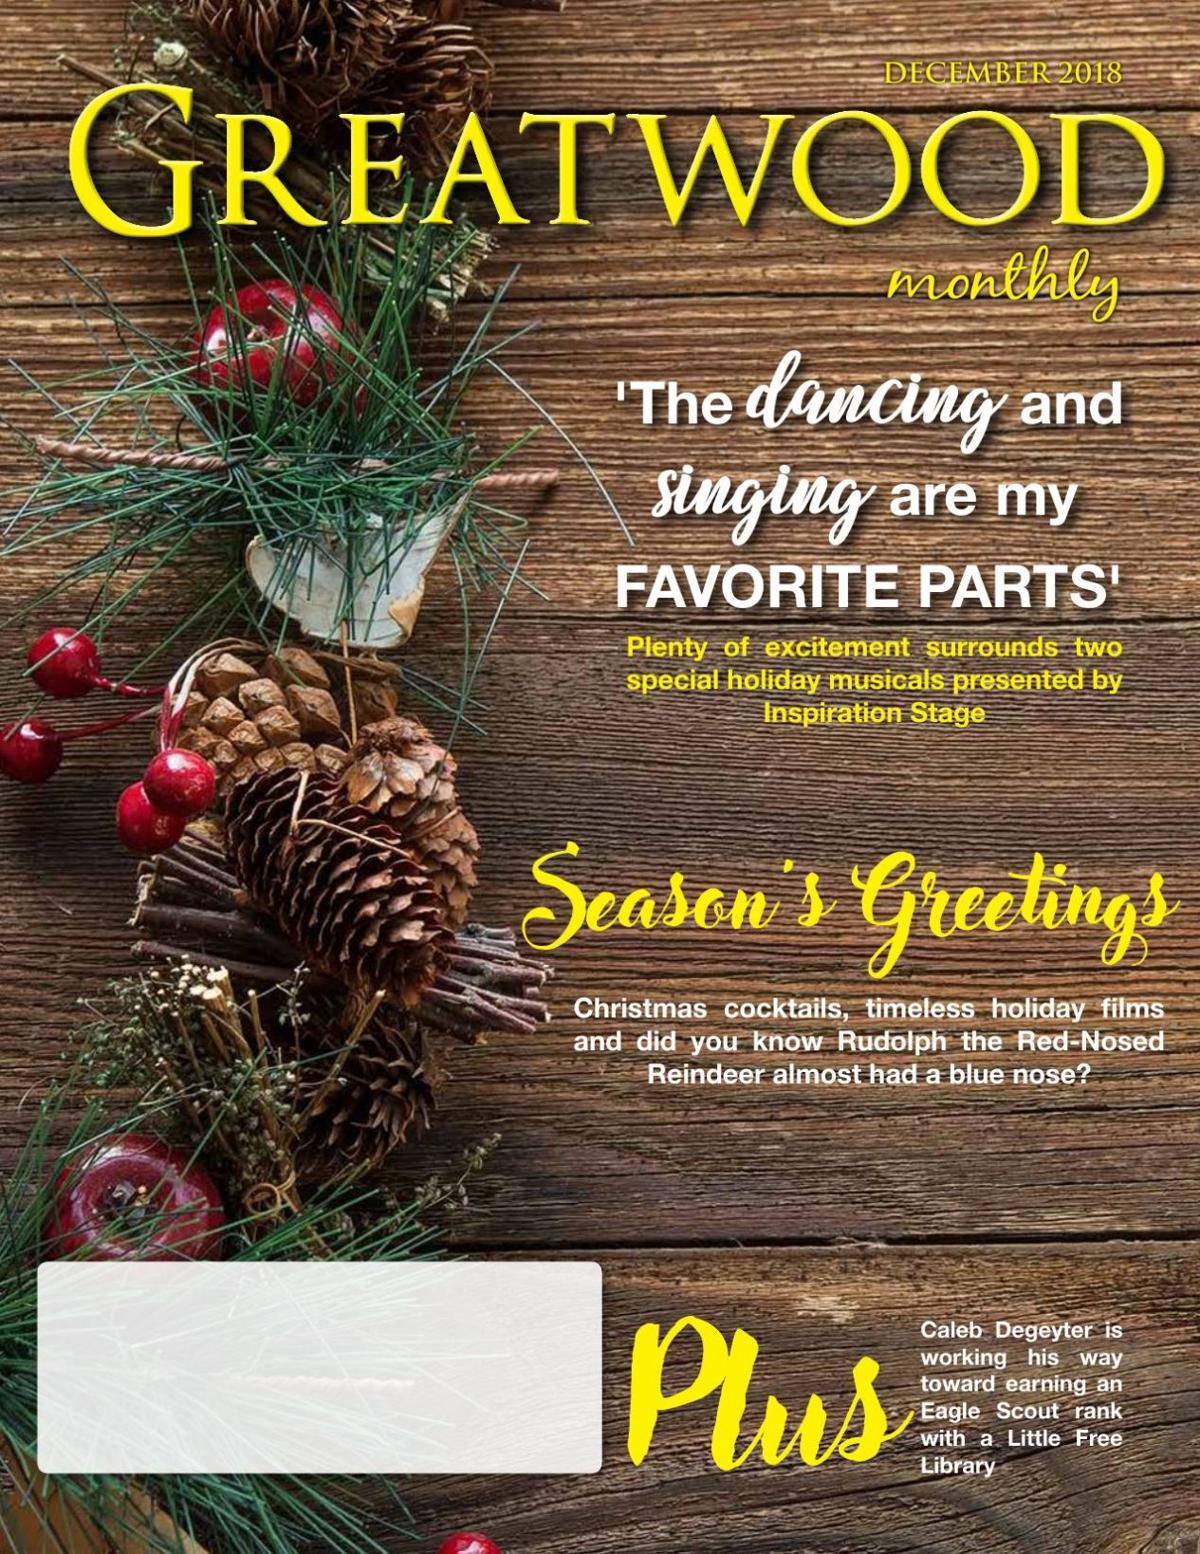 Greatwood Monthly: December 2018